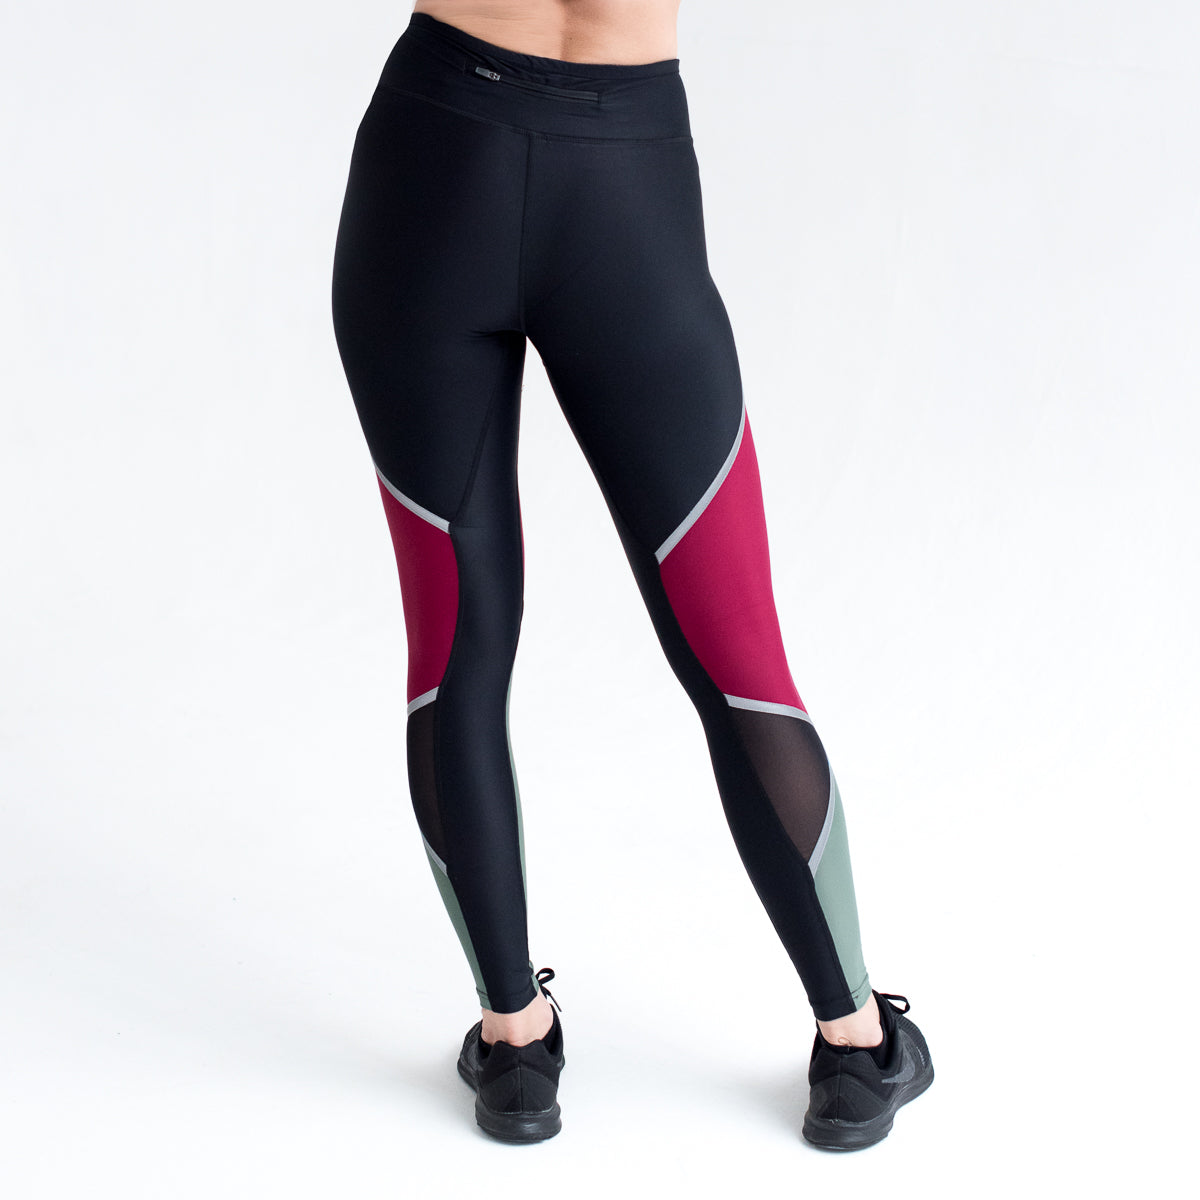 Womens Compression Leggings